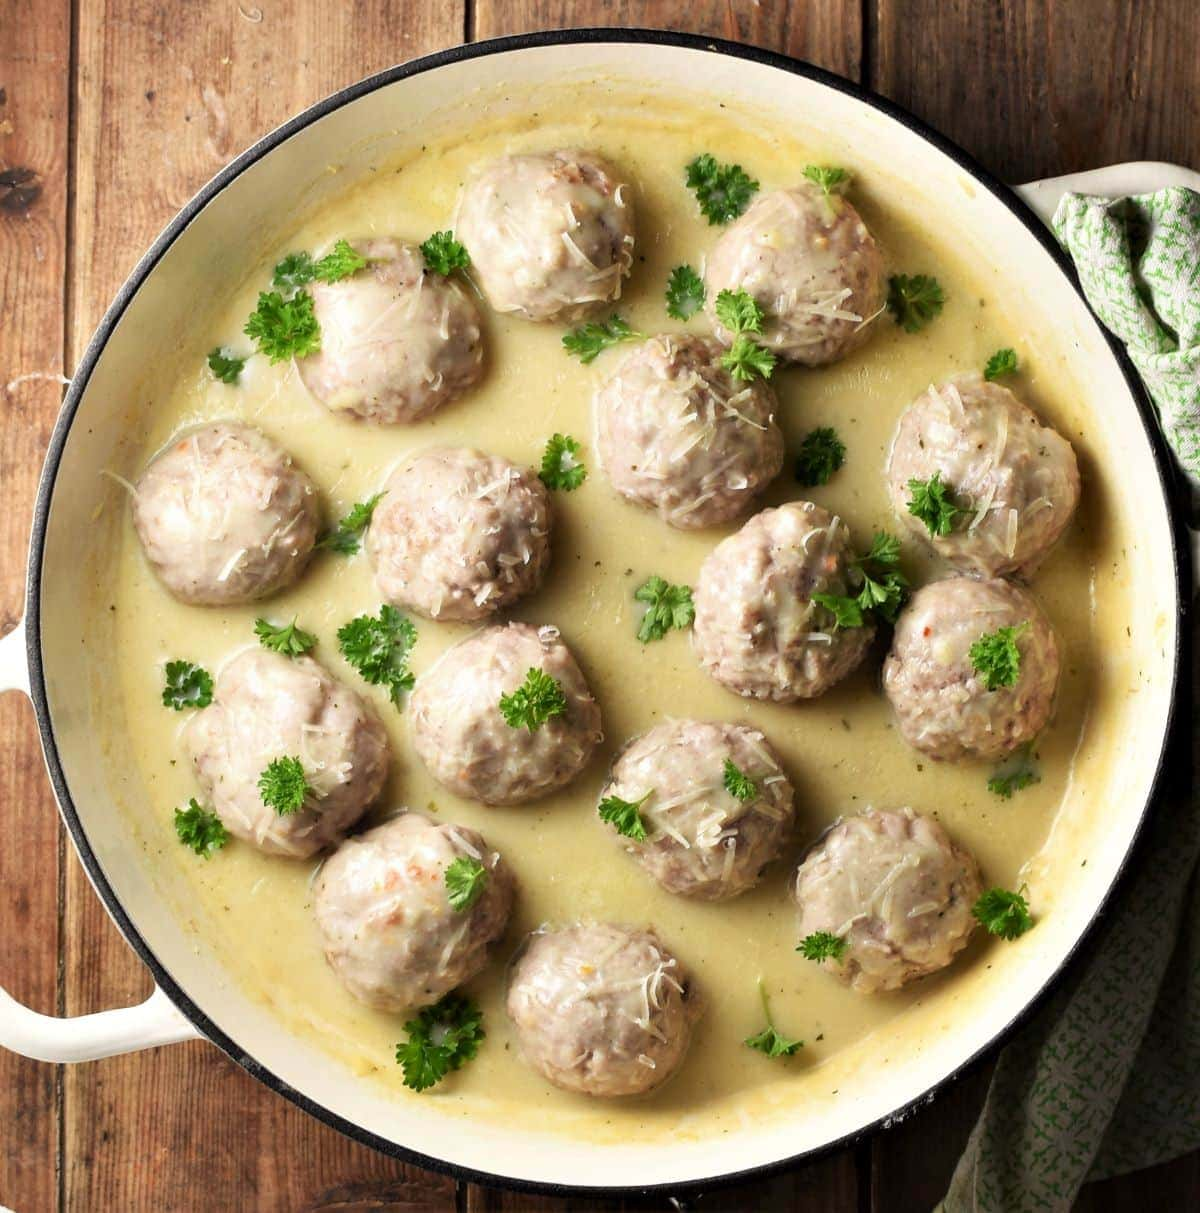 Meatballs in creamy sauce with parsley in large shallow pan.